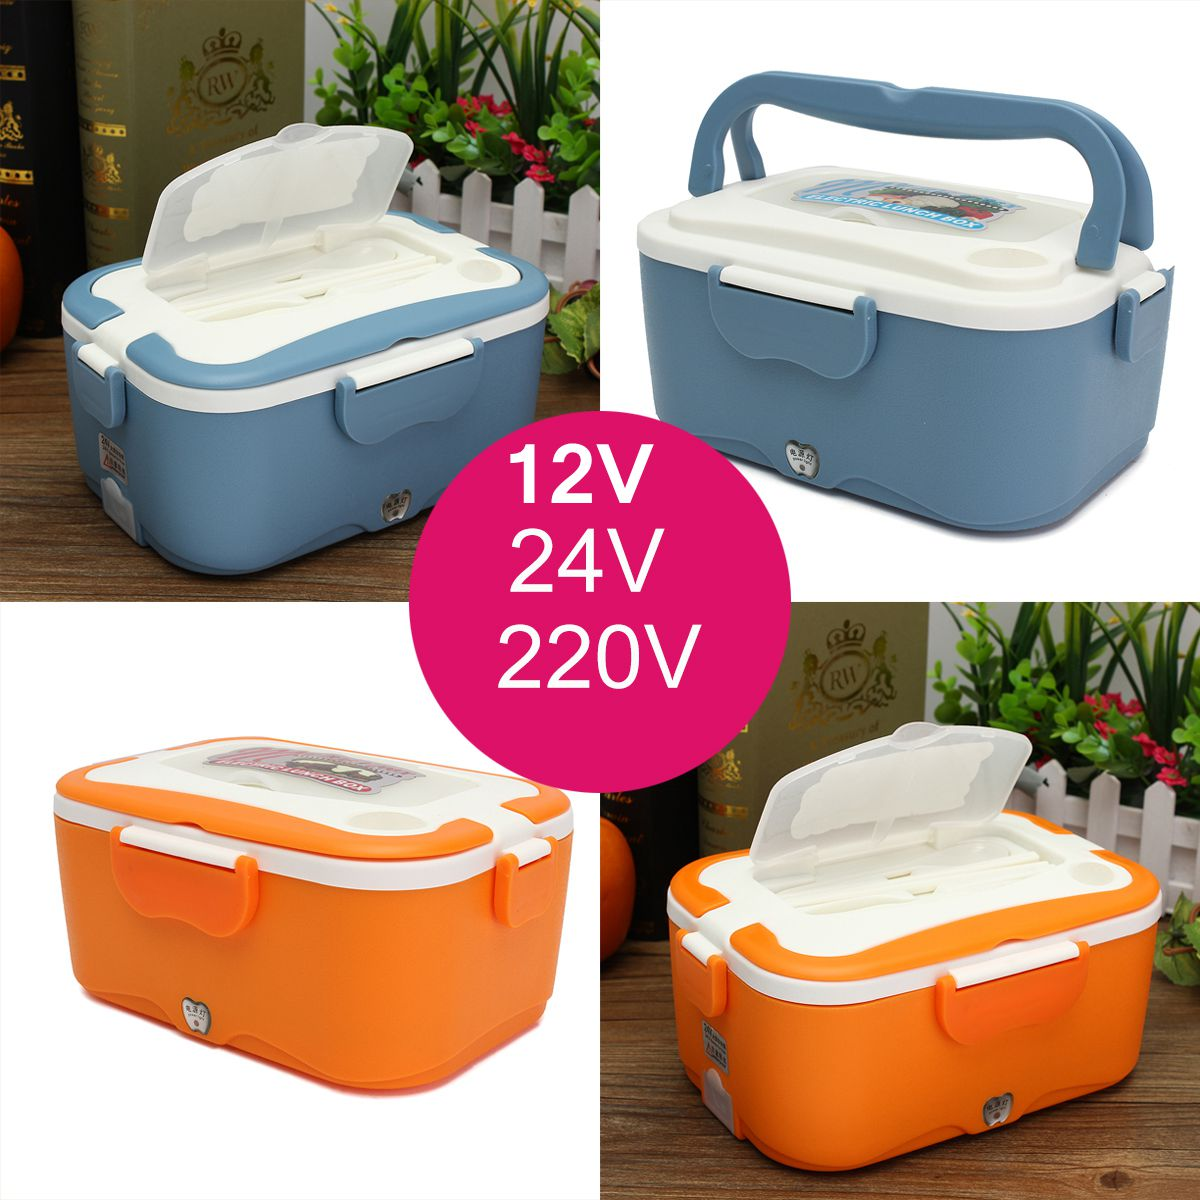 12/24/220V 1.5L Electric Lunch Box Home Auto Car Food Warmer Heated Meal Container Stove Home Kitchen Outdoor Cooking Appliance